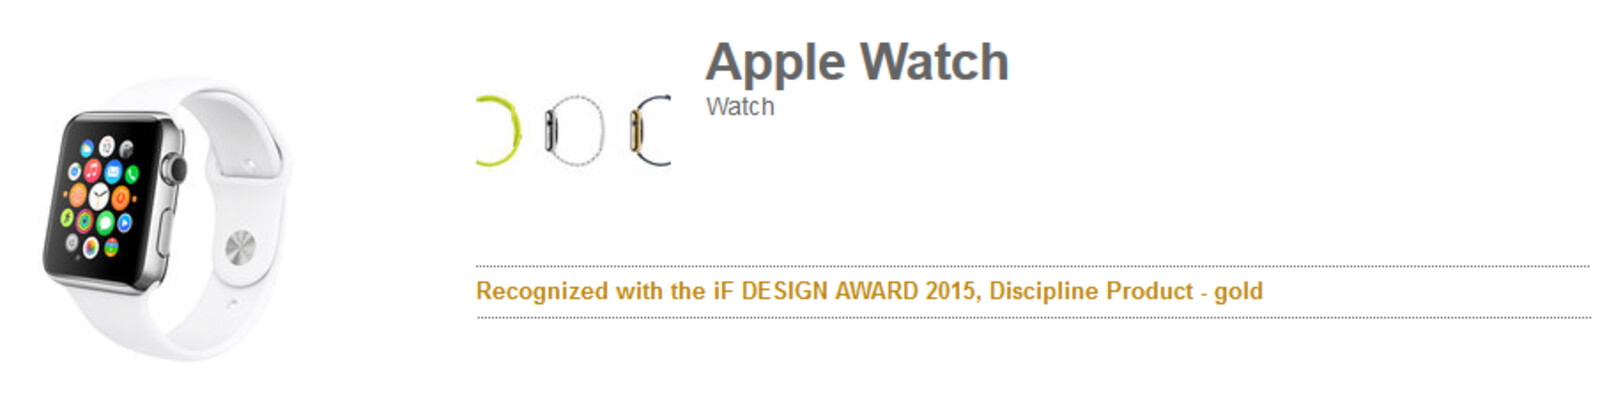 Apple Watch wins iF Design Award 2015, appears on the ...